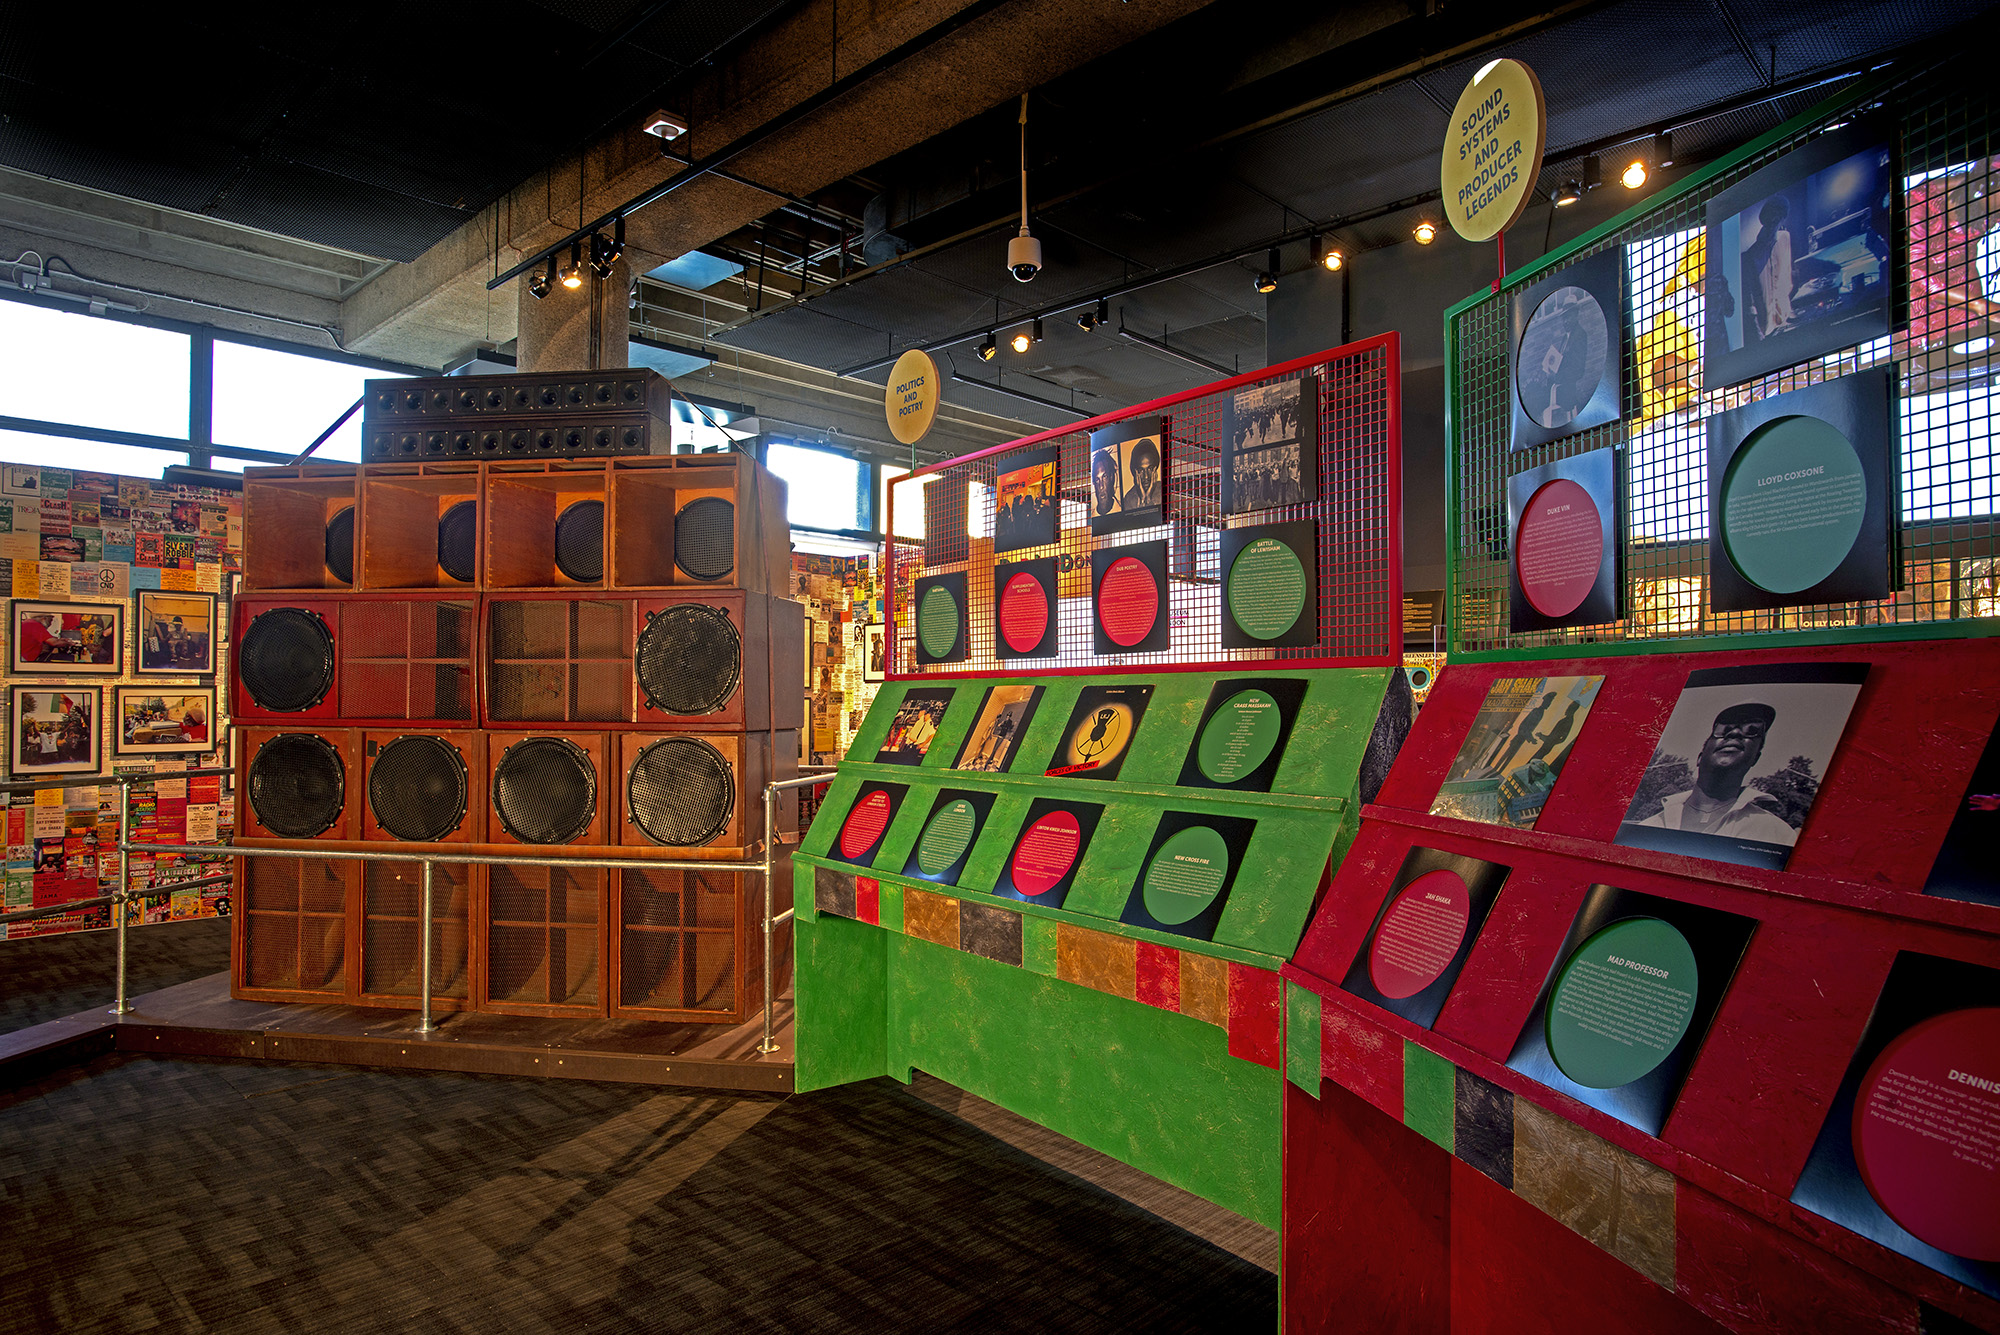 Dub London: Bassline of a City - Museum of London​